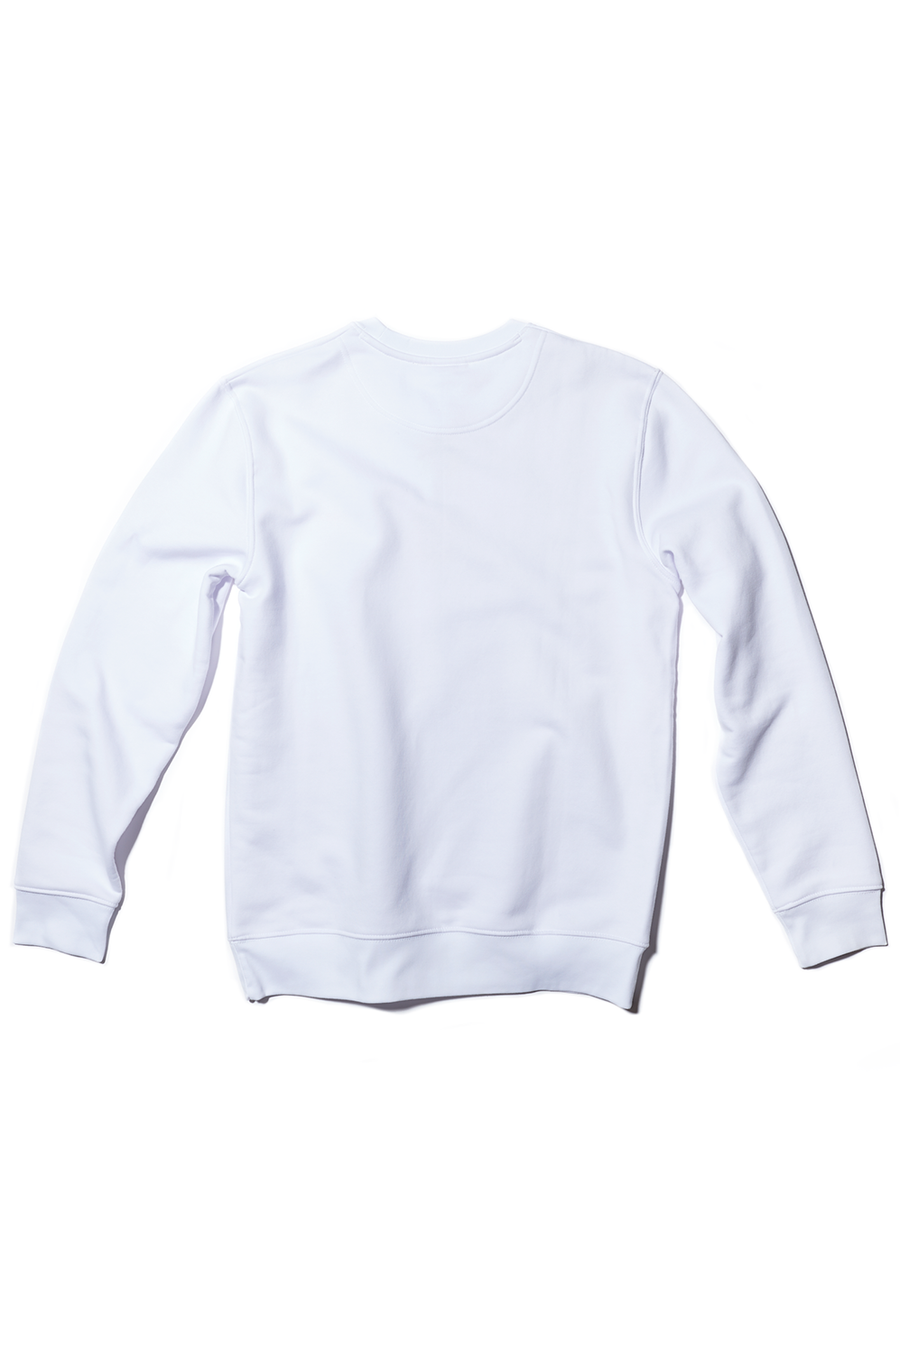 White Crewneck Embroidered Not Sorry Sweatshirt